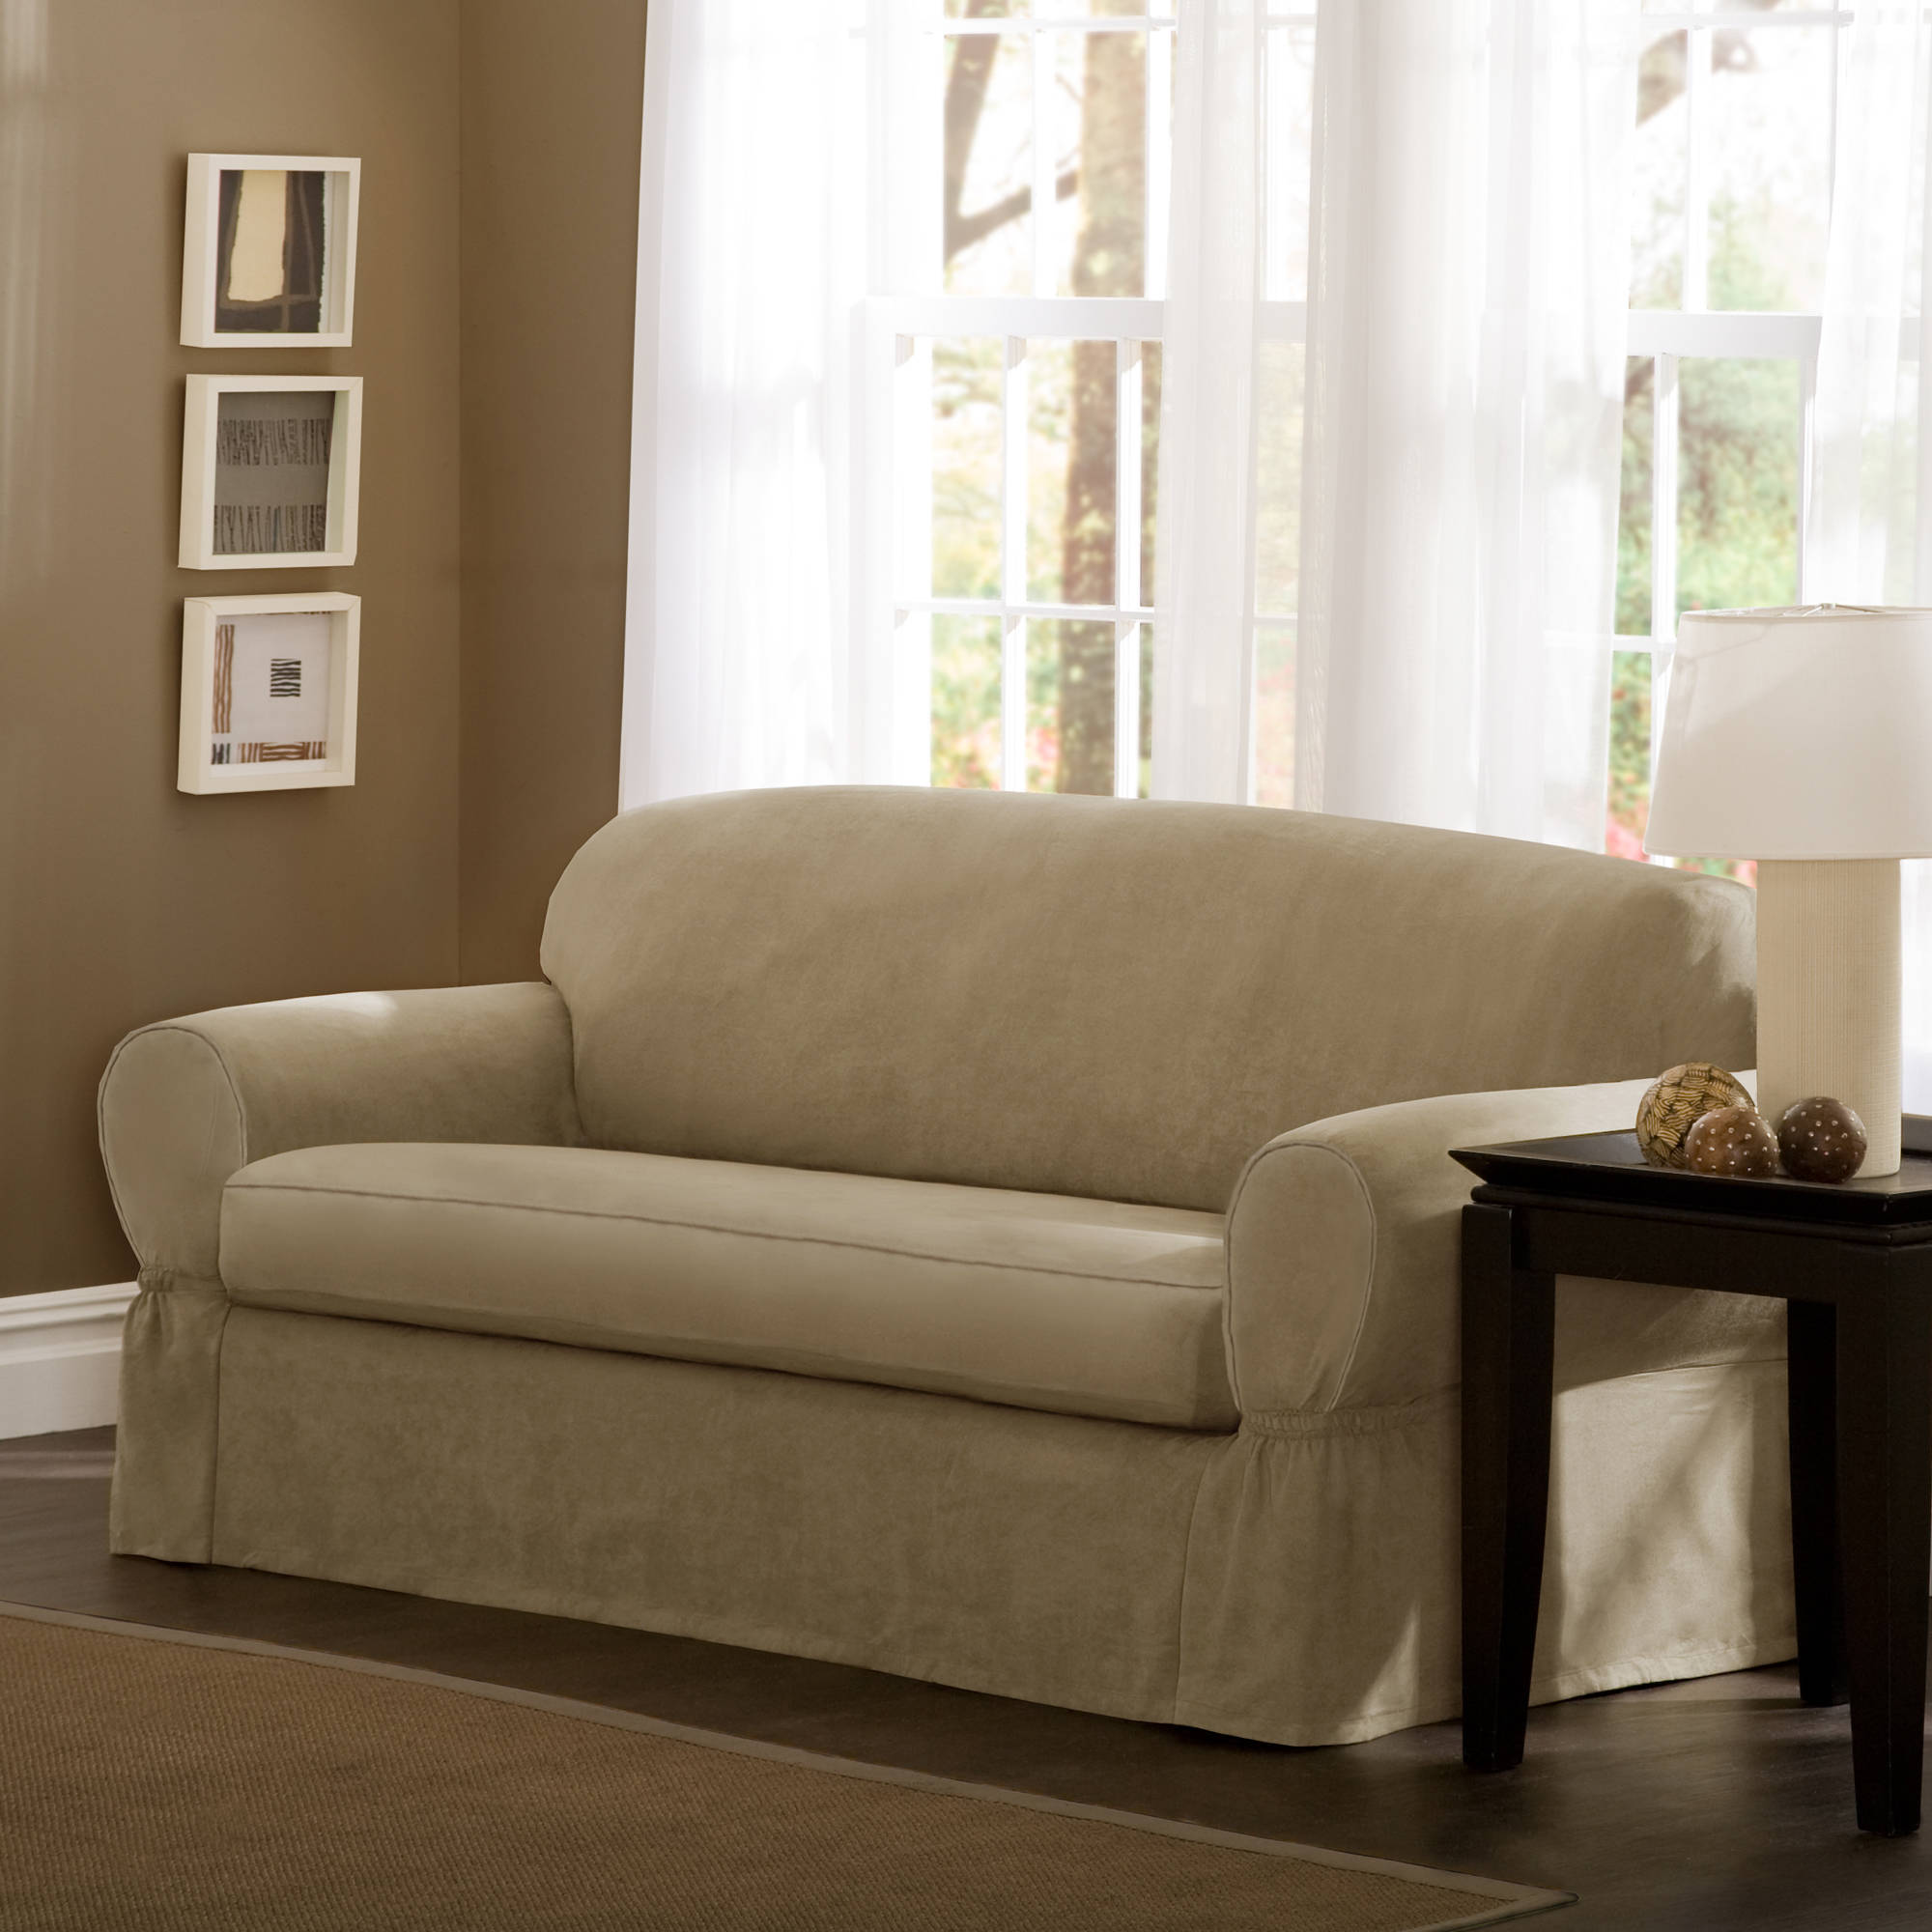 Maytex Piped Faux Suede Non Stretch 2 Piece Sofa Slipcover   Walmart.com